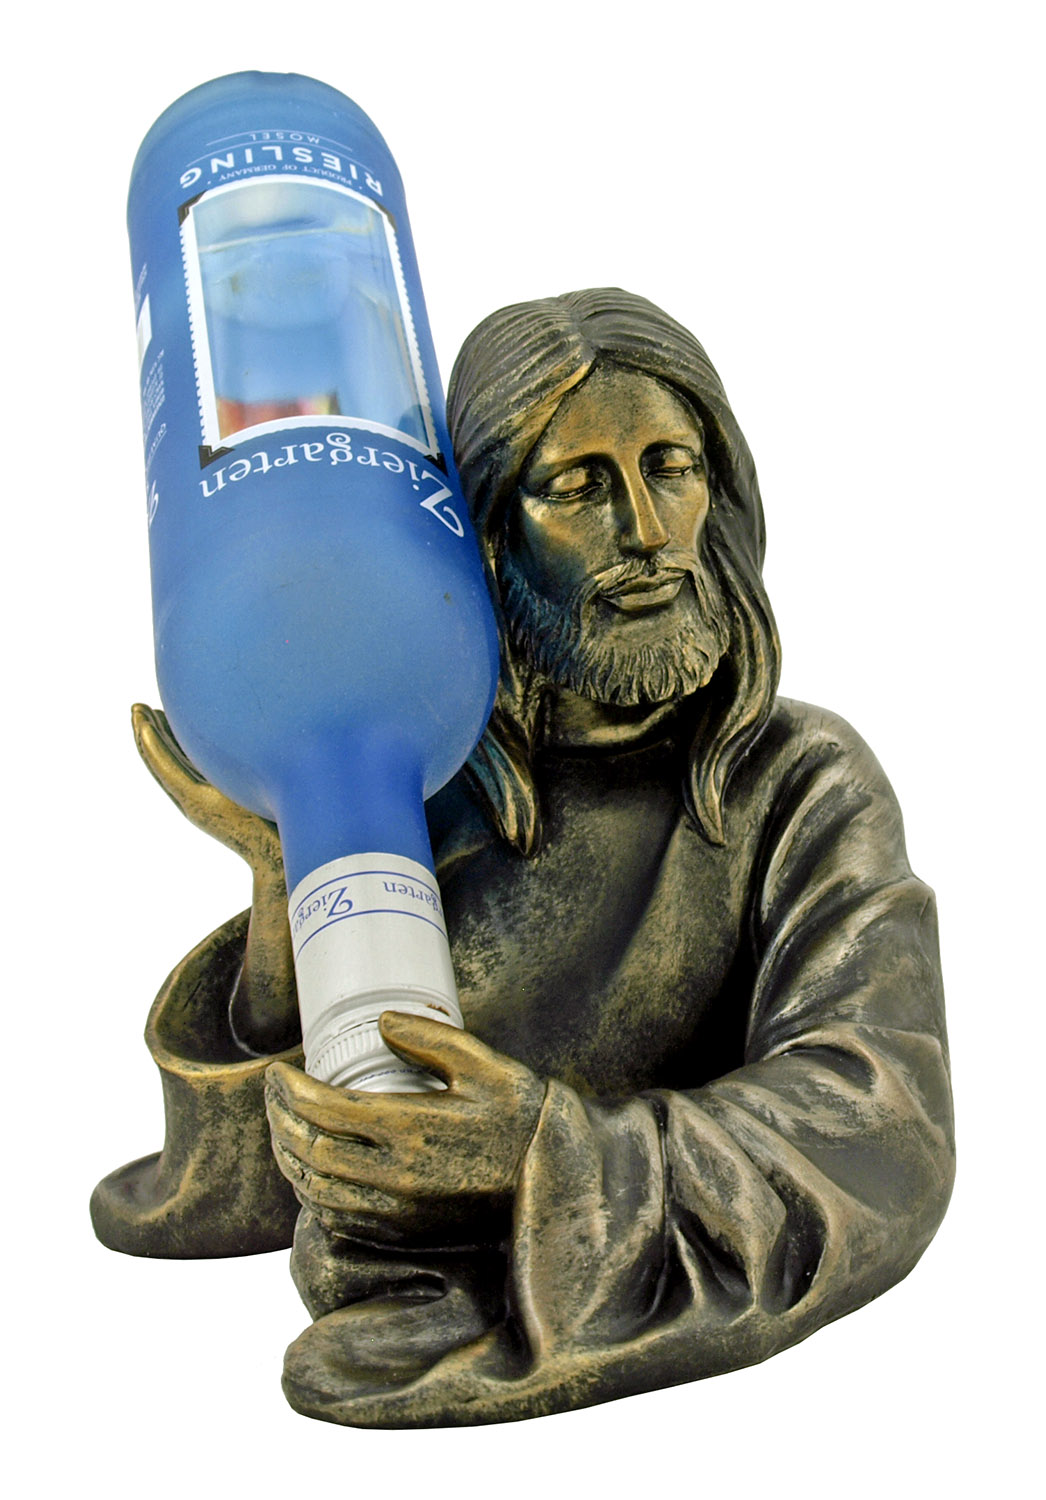 Water into Wine - Christian Jesus Wine Bottle Holder Statue Figurine - DWK